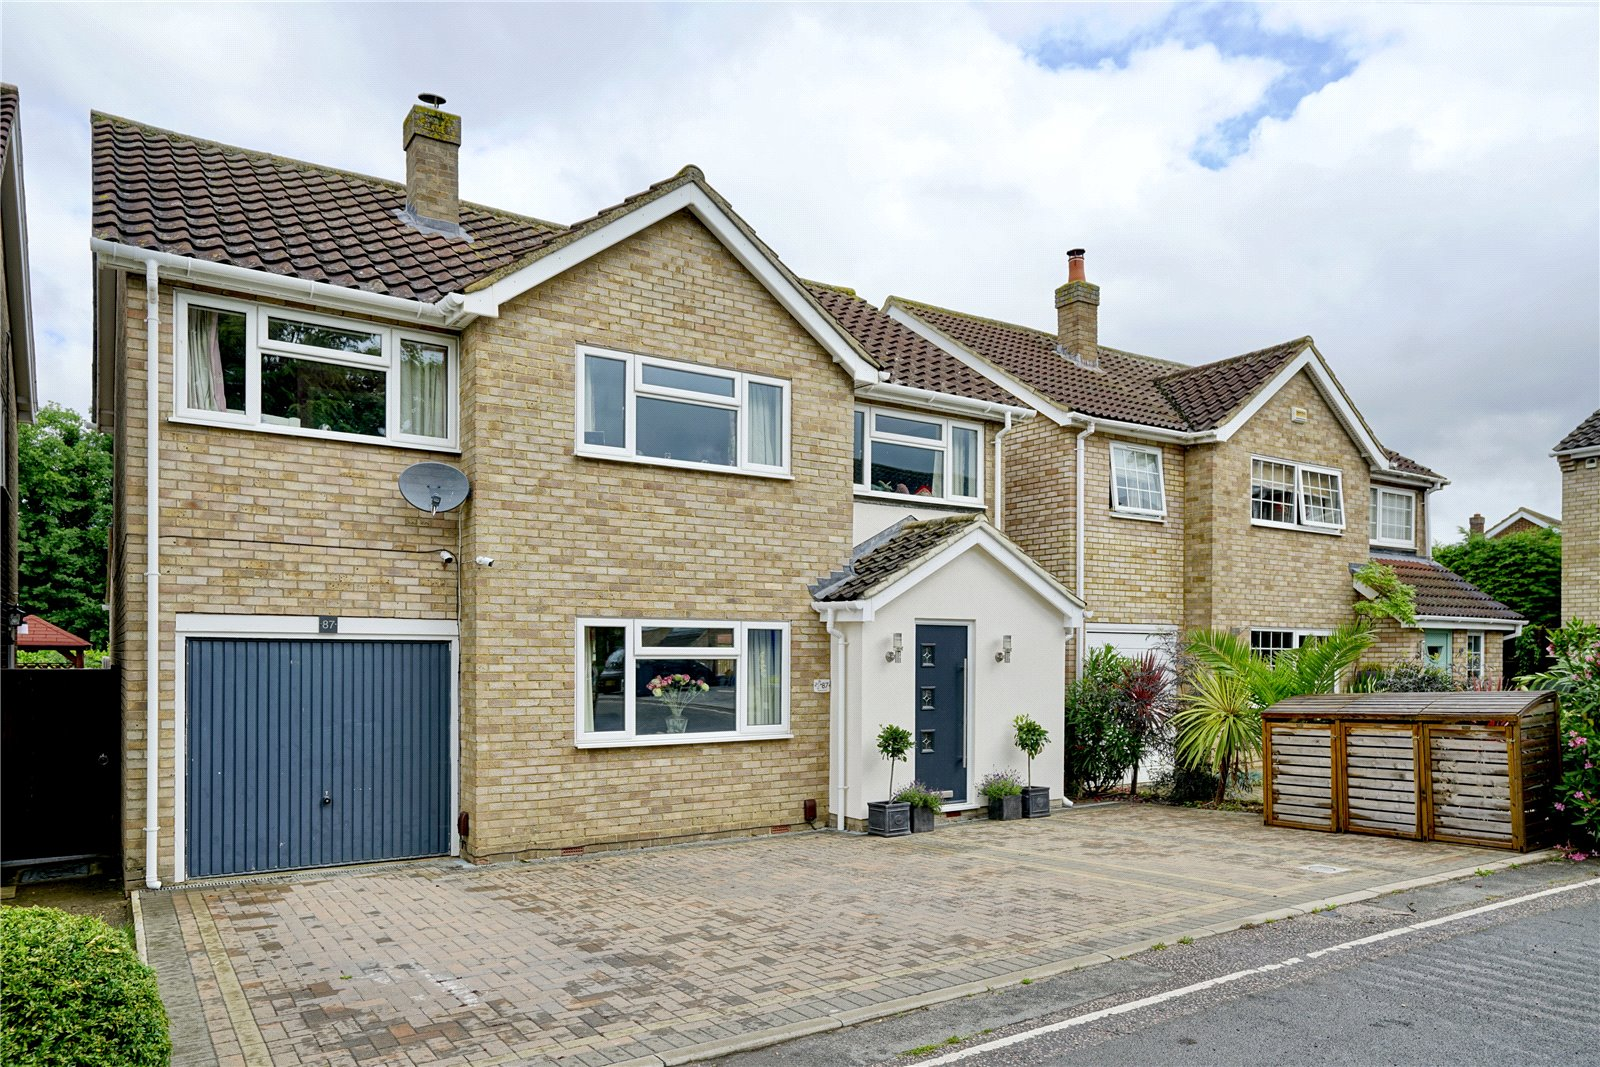 4 bed house for sale in Longsands Road, St. Neots 0